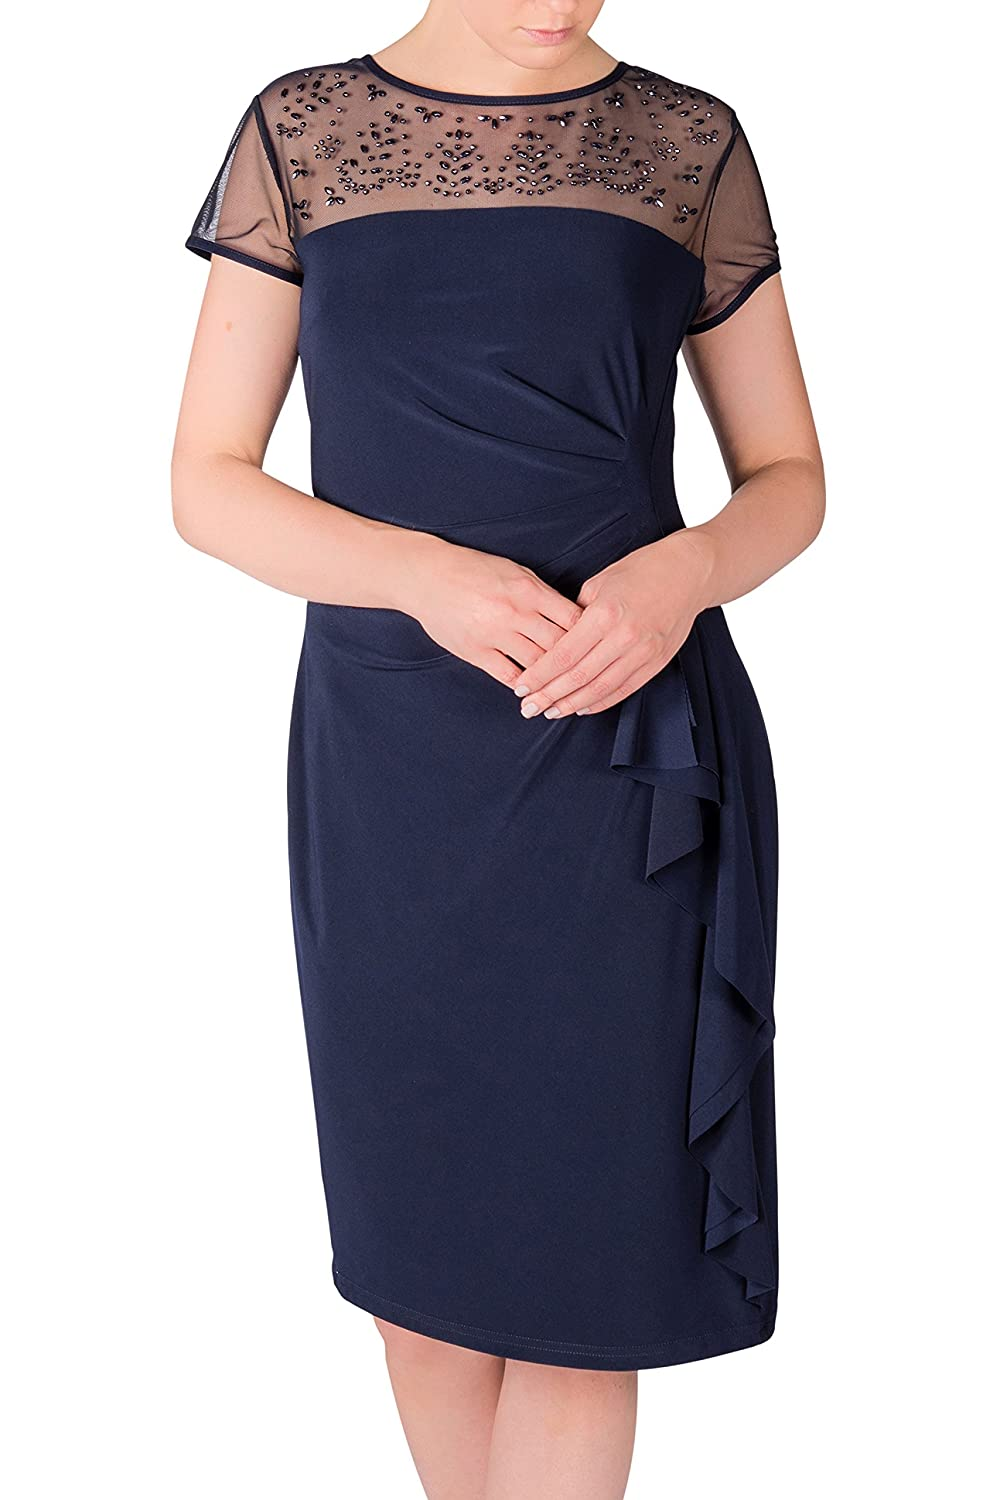 06e476131b3 Joseph Ribkoff Midnight Blue Sheer Neck Beaded Cocktail Dress Style 163164  at Amazon Women s Clothing store